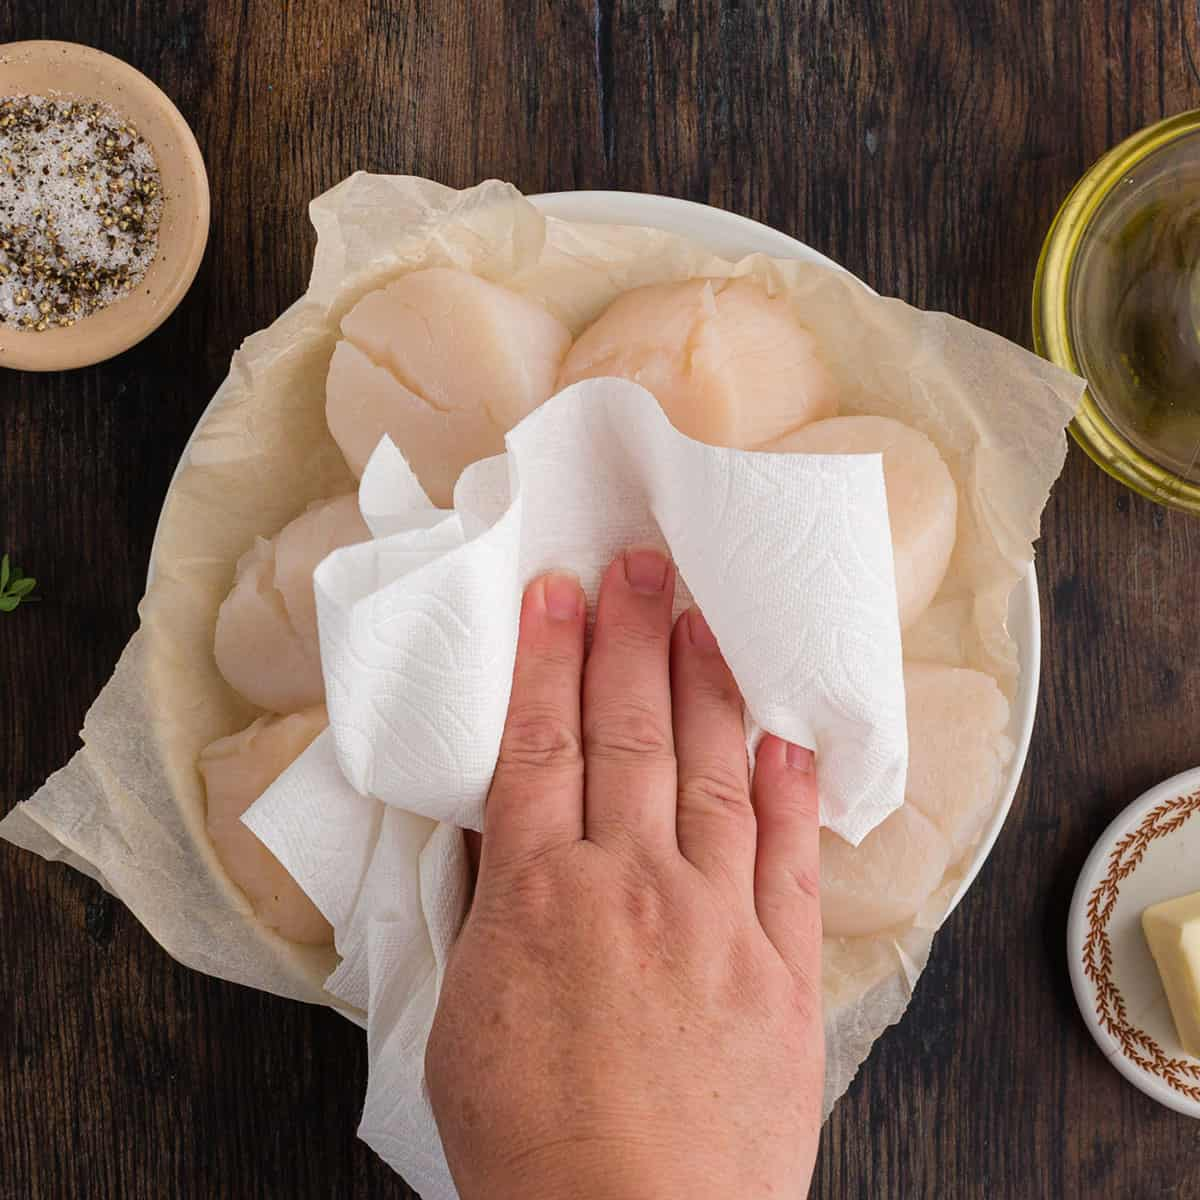 Blotting scallops dry with a paper towel.